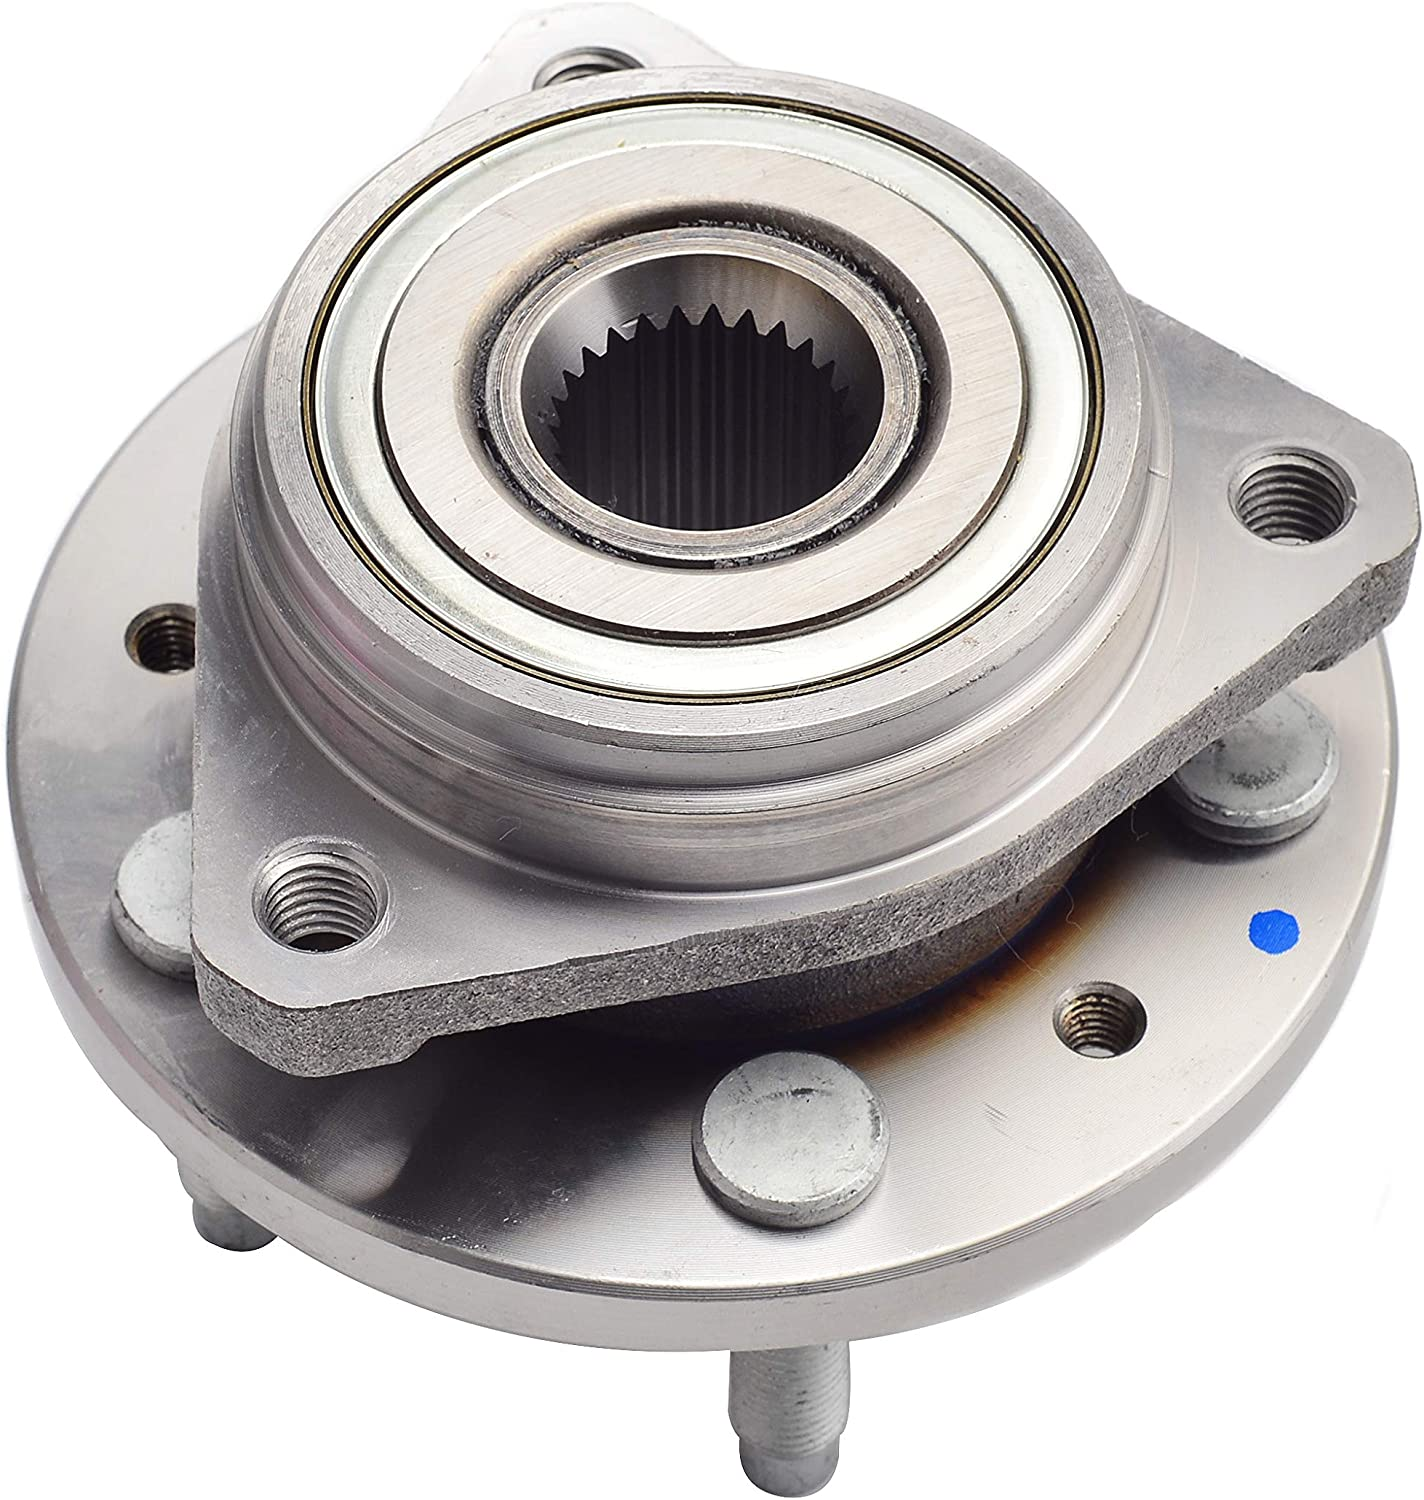 ADIGARAUTO 513156 NEW Front Wheel Hub /& Bearing Assembly for 2003-1999 Ford Windstar